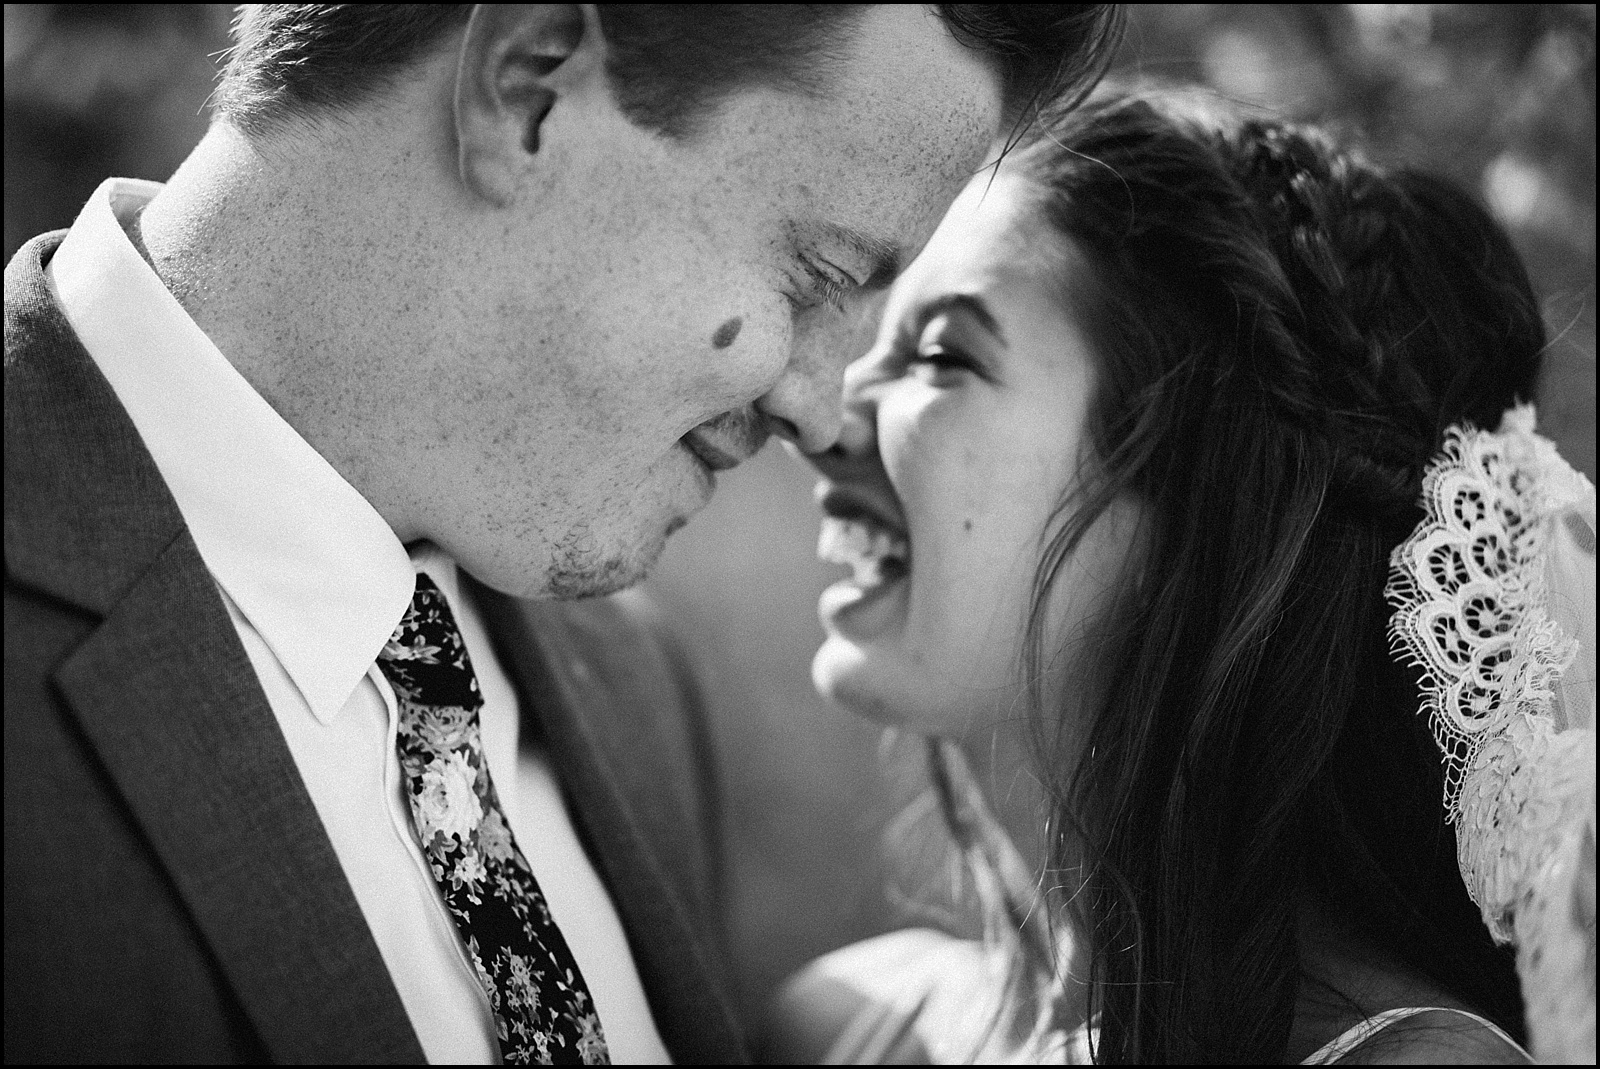 Candid black and white wedding